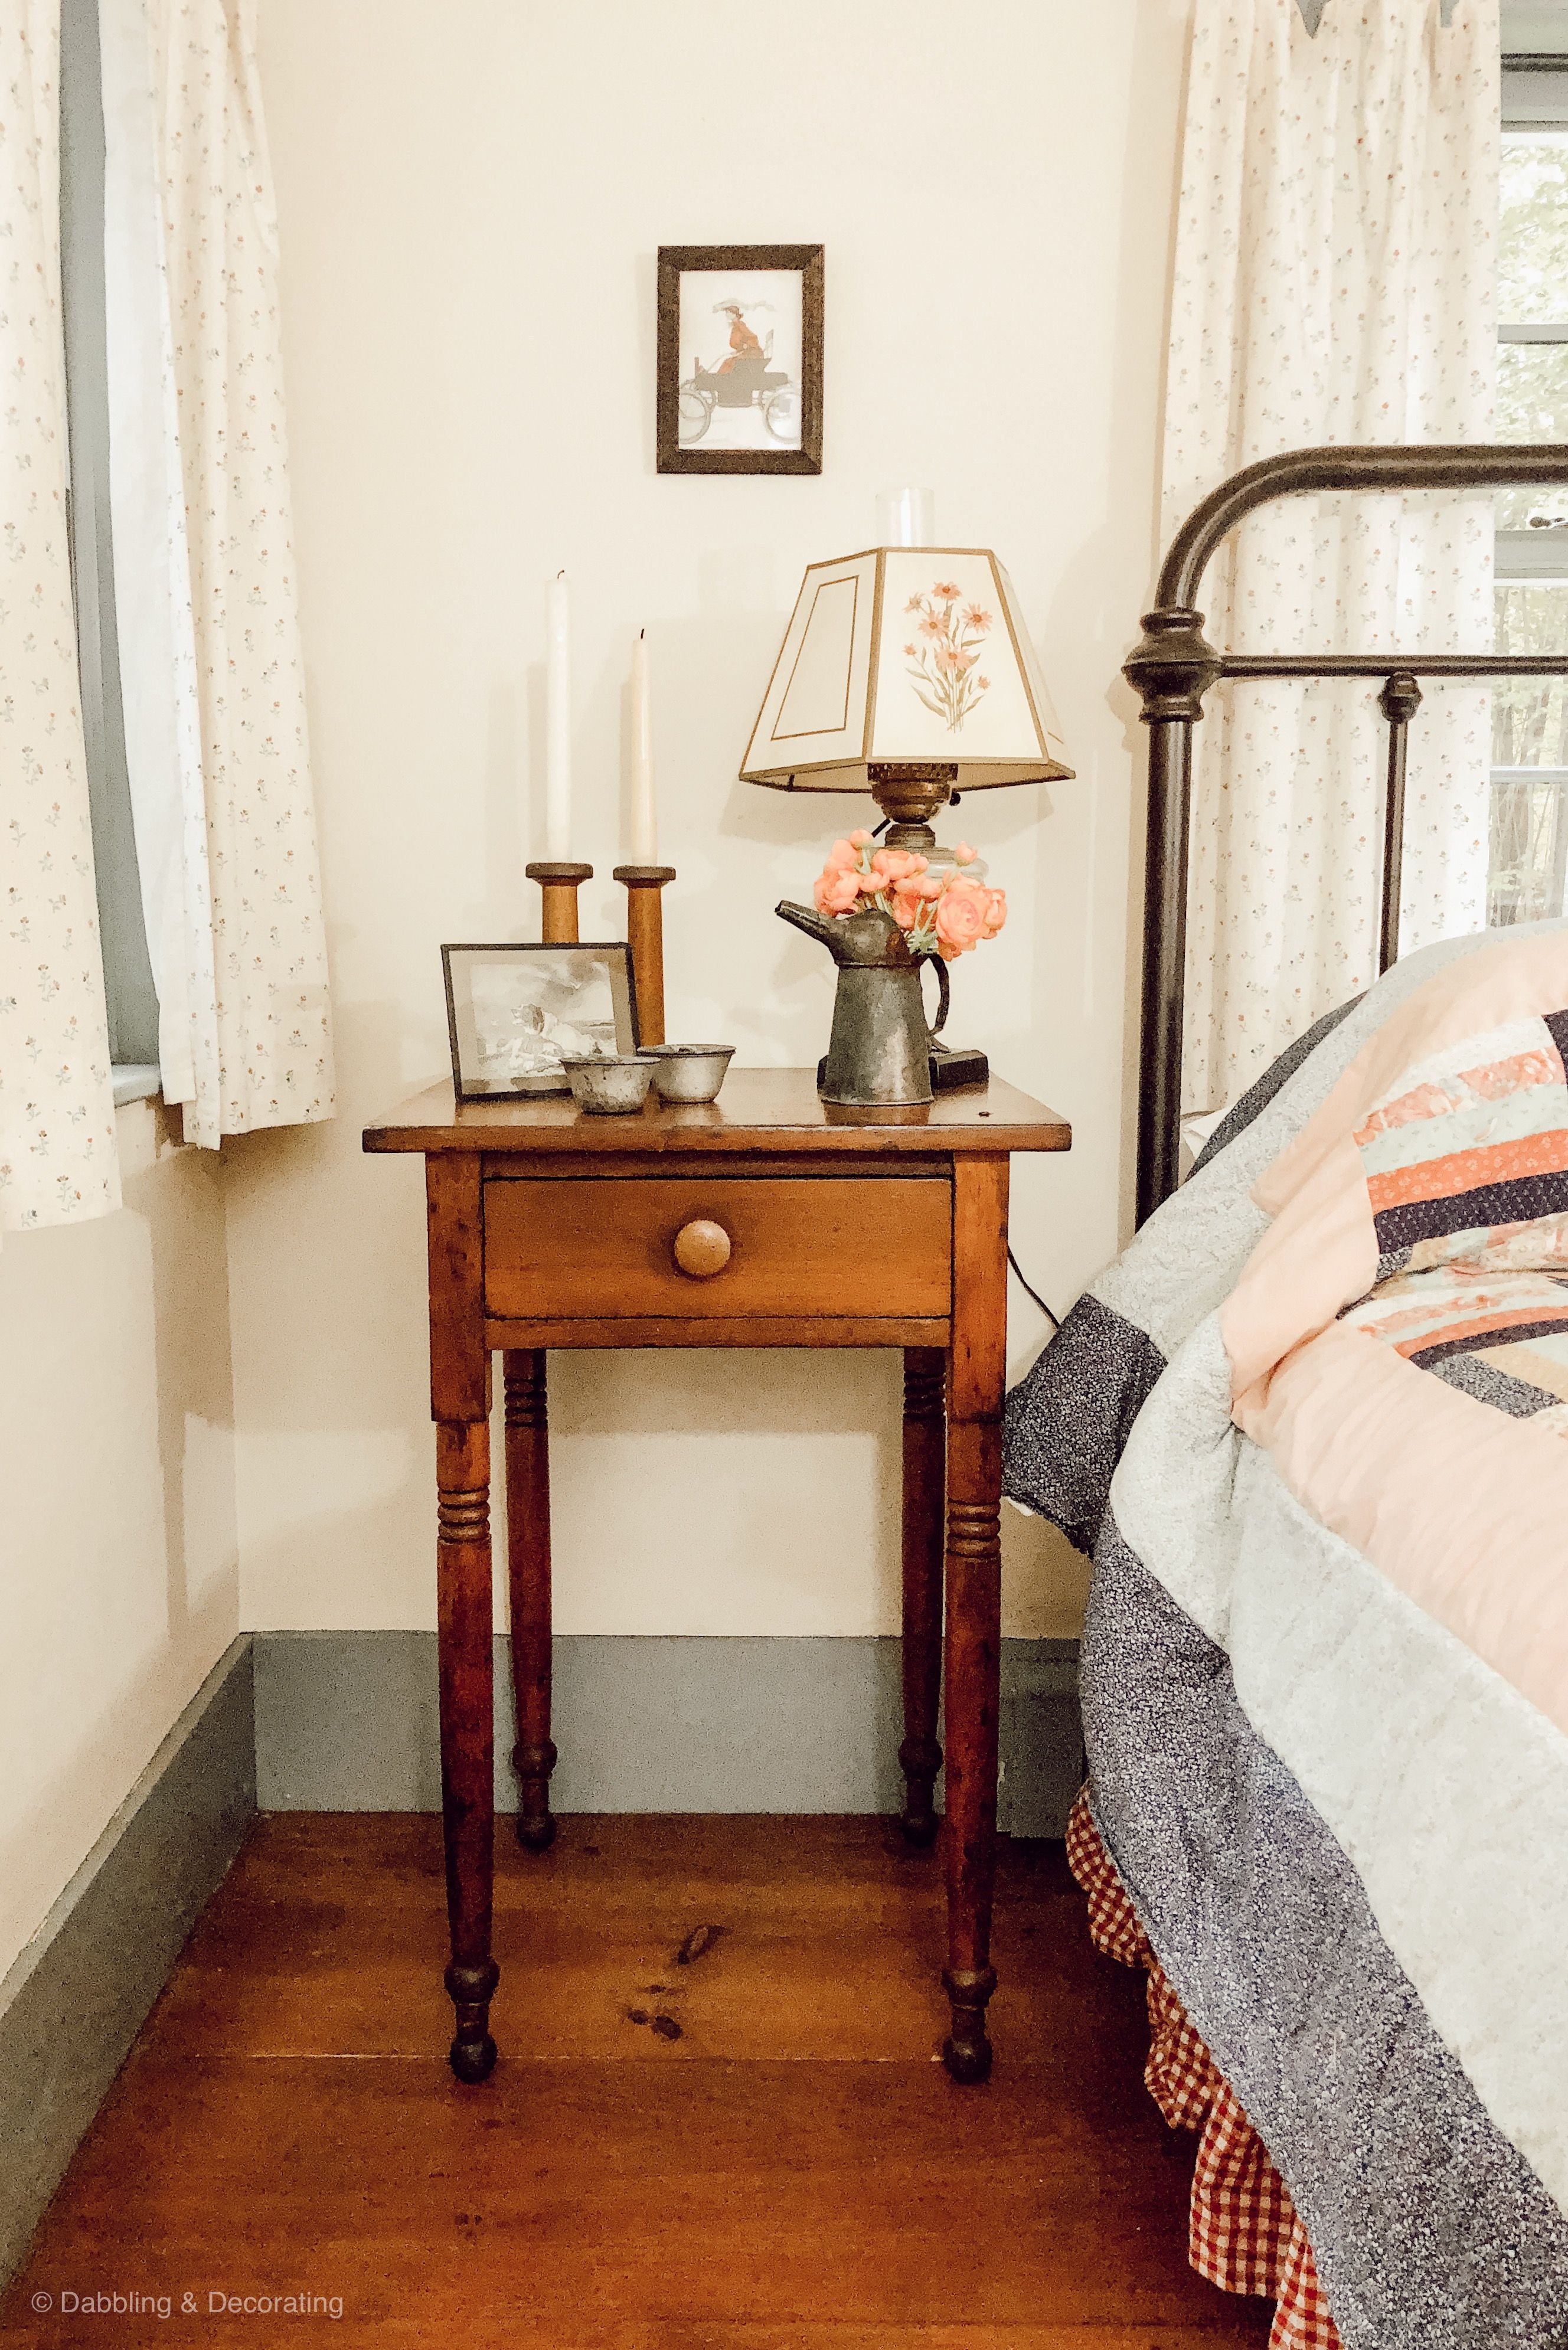 Guest Bedroom Ideas Created With Antique Family Keepsakes Guest Bedrooms Guest Bedroom Antique Decor Bedroom